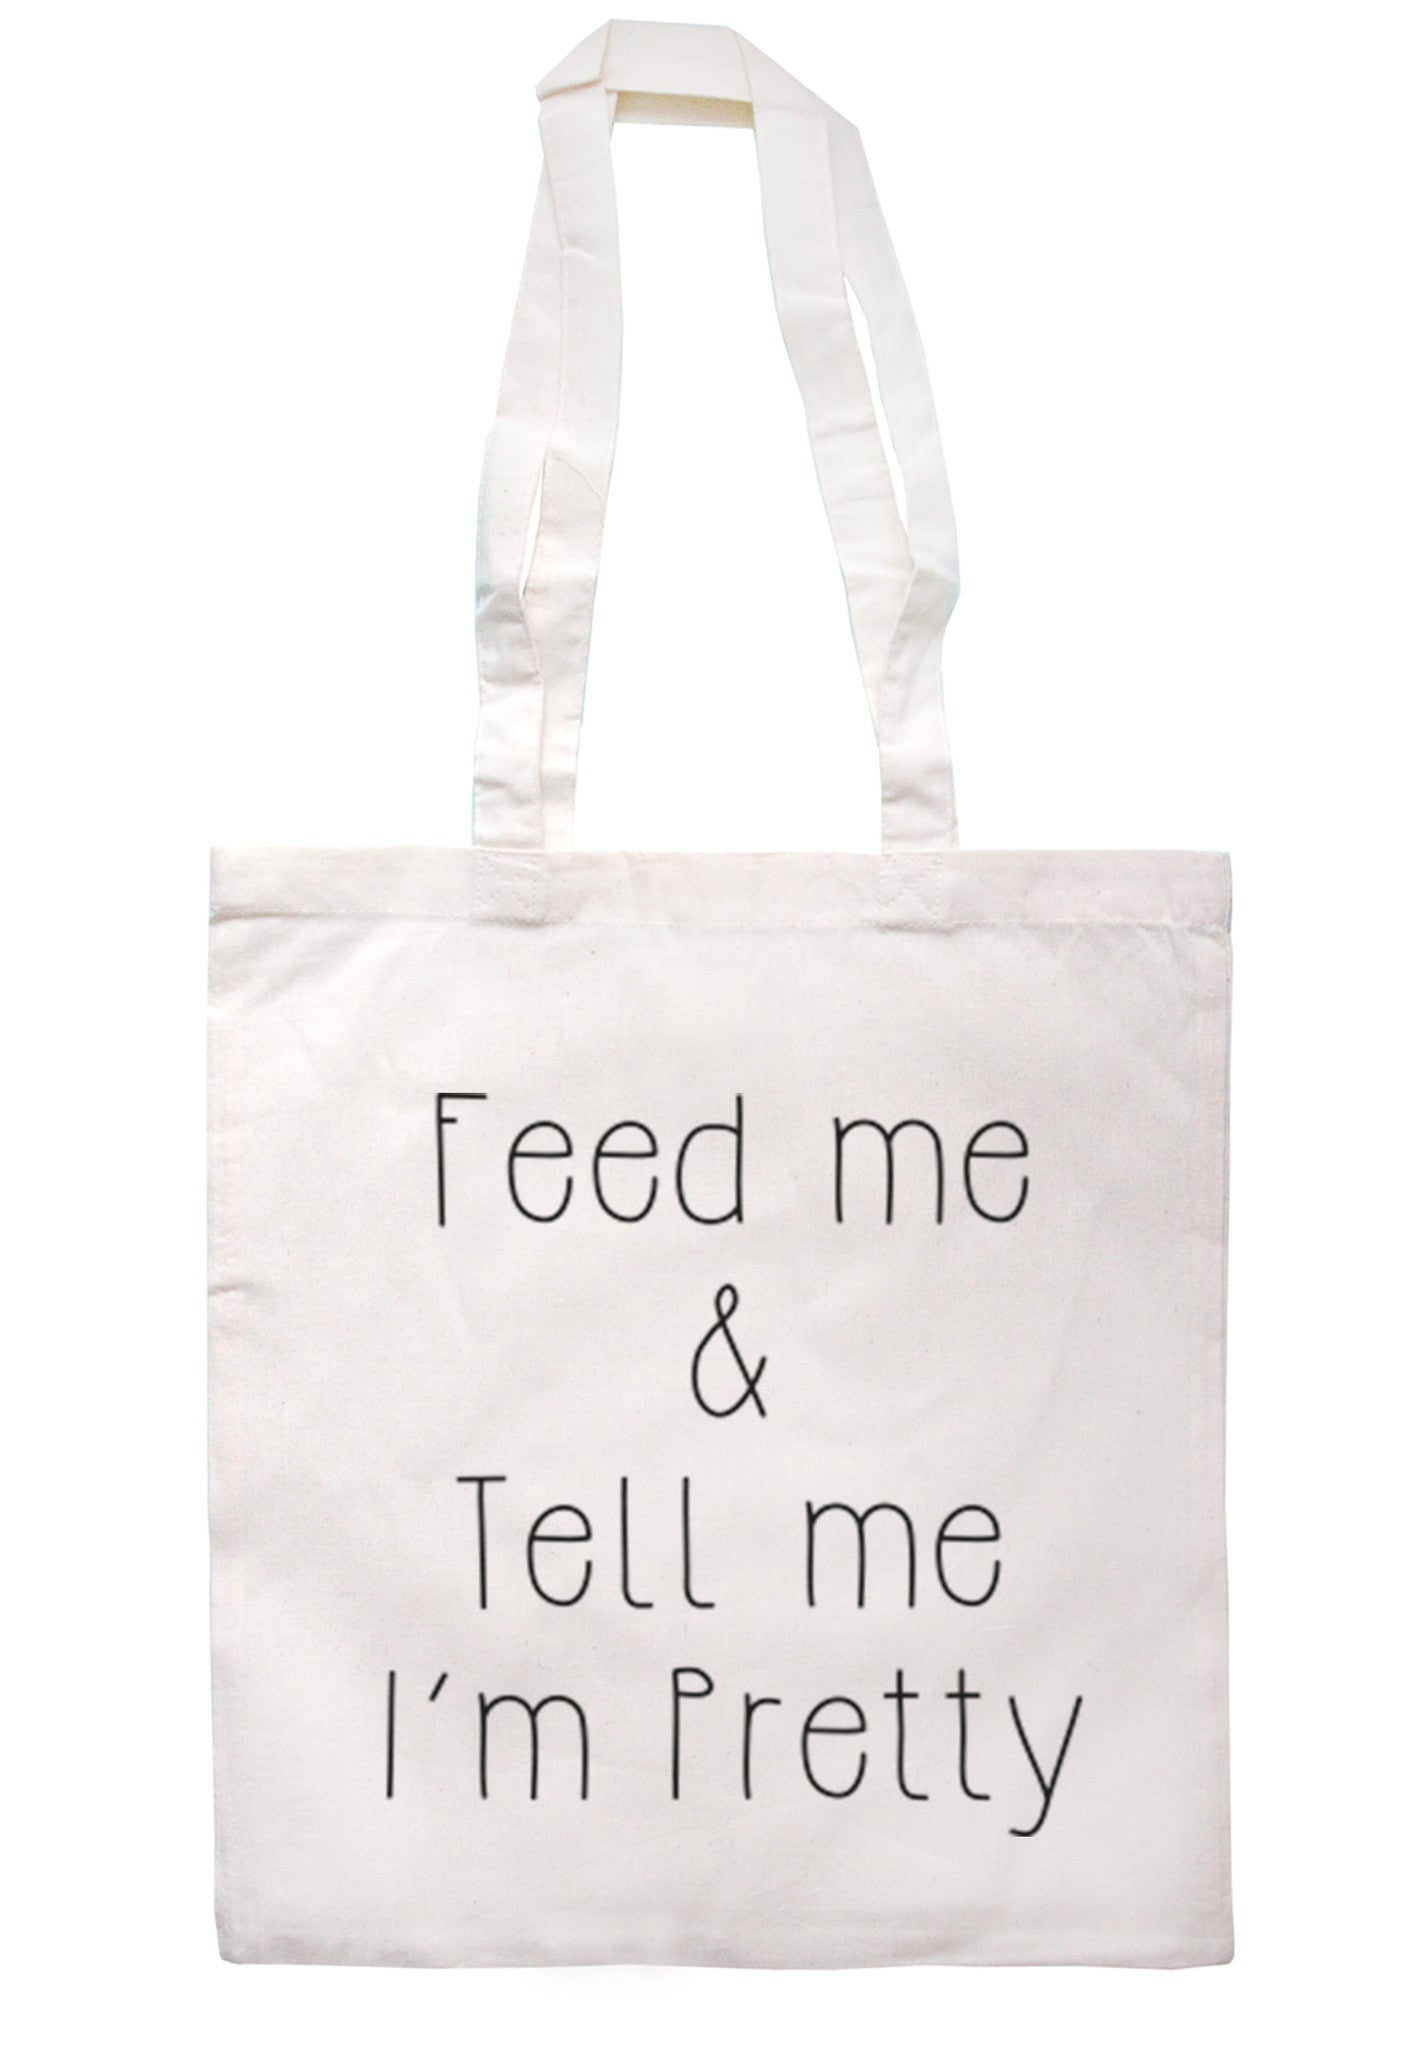 Feed Me And Tell Me I'm Pretty Tote Bag TB0074 - Illustrated Identity Ltd.